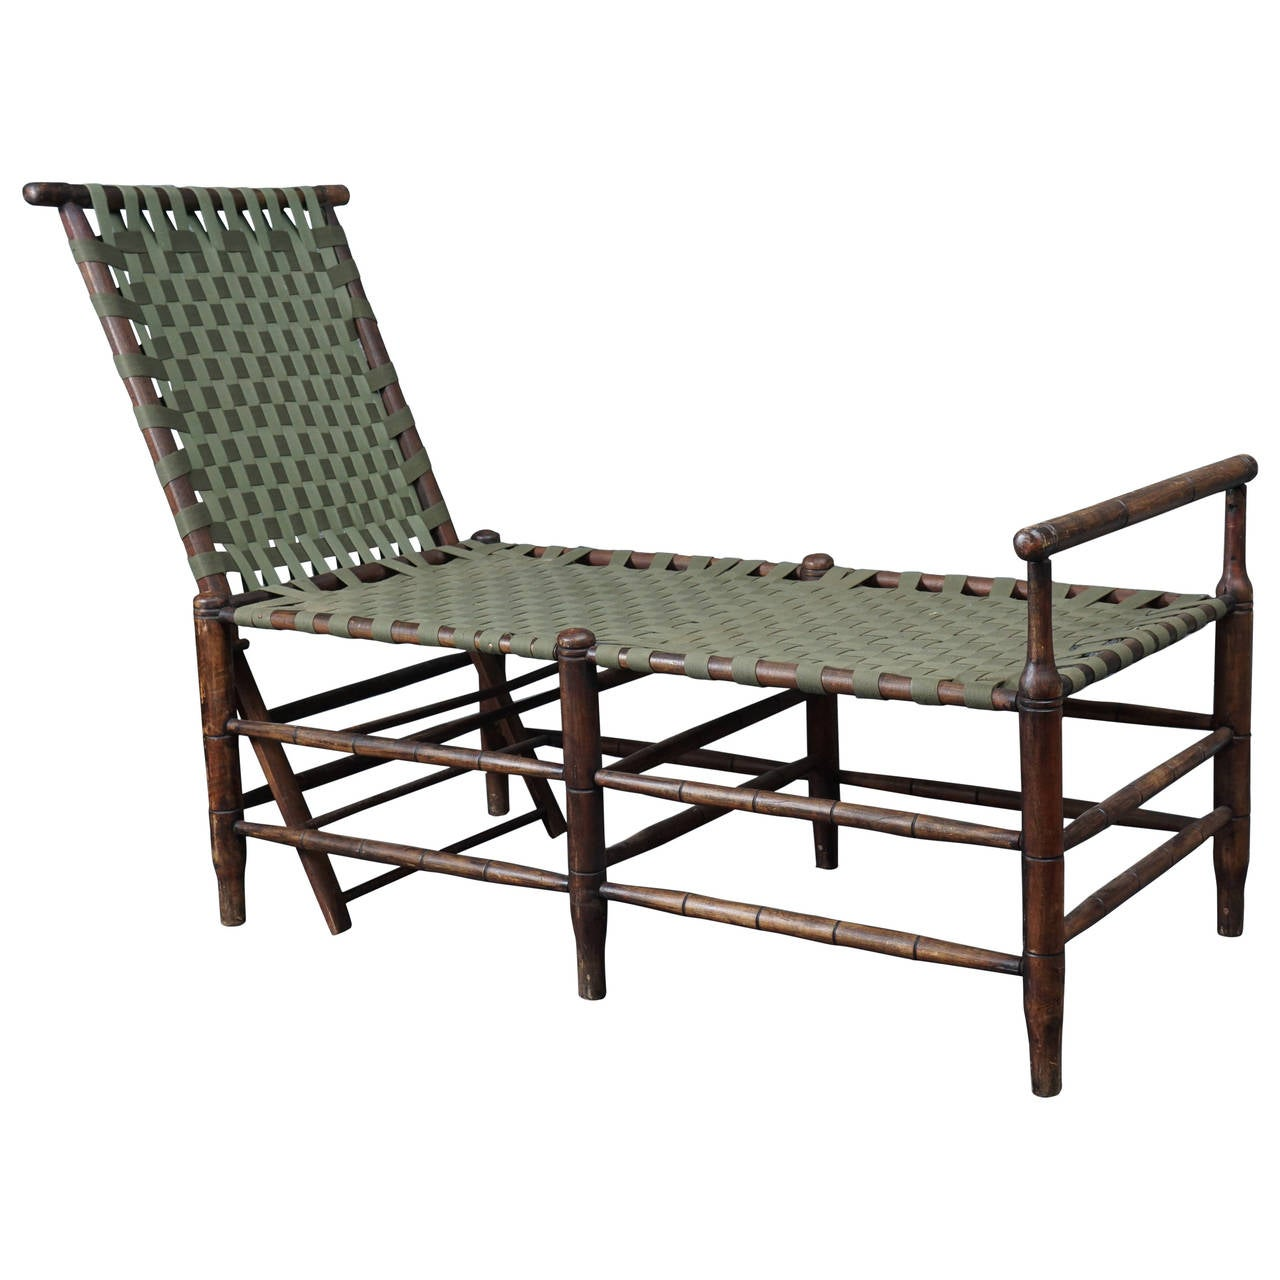 Adirondack adjustable chaise at 1stdibs for Adirondack chaise